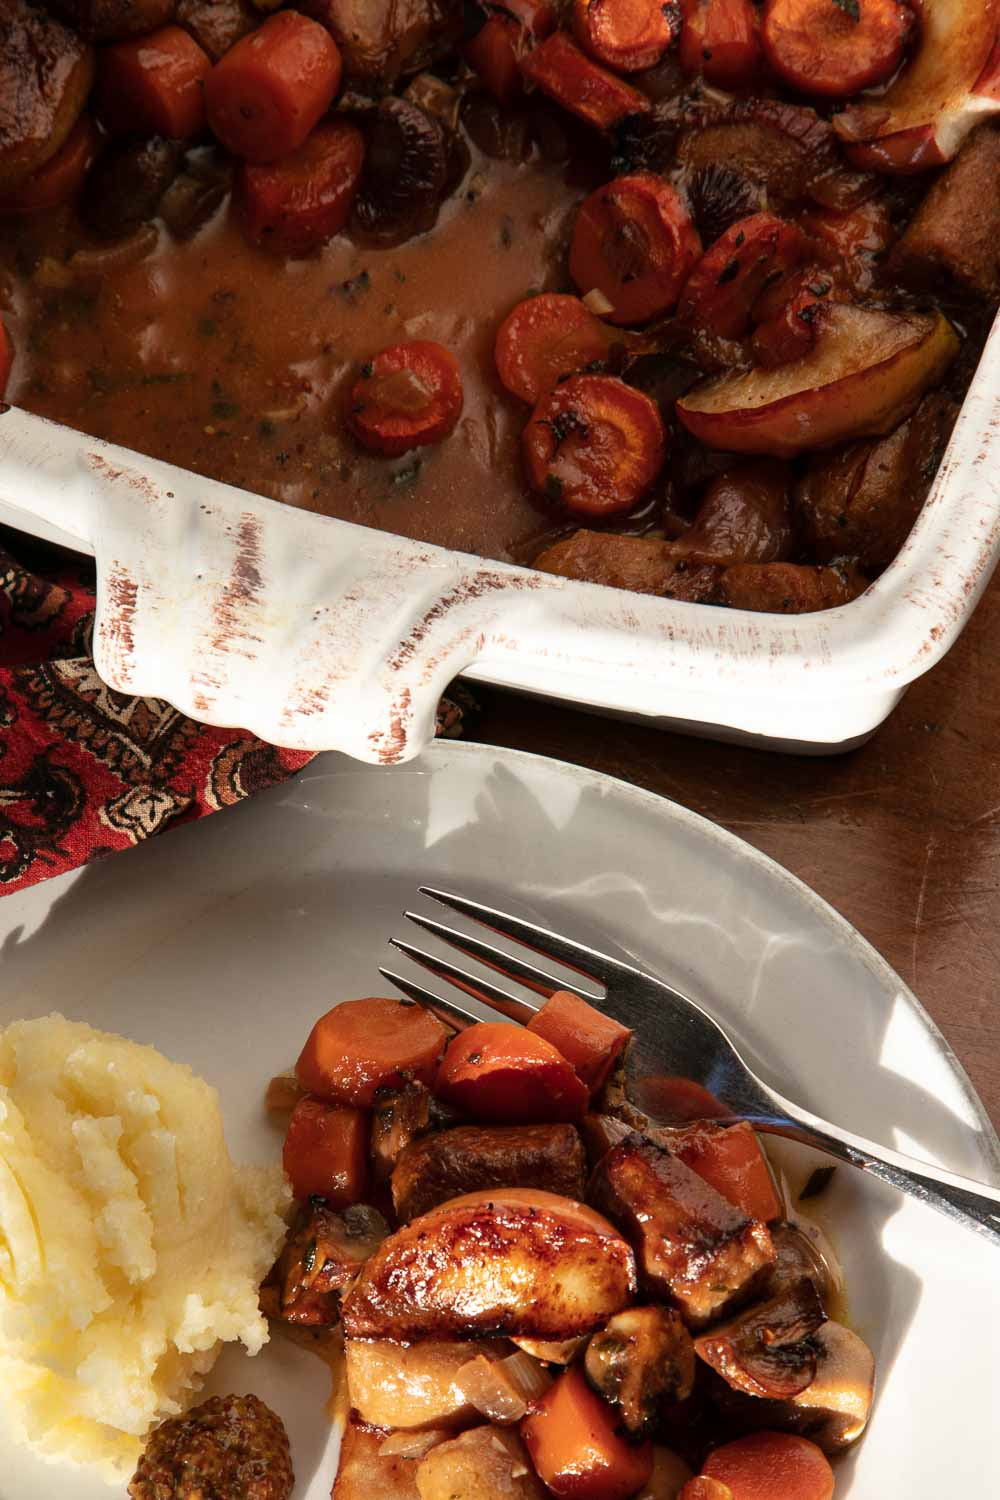 Vegan Sausage Casserole in a casserole dish and a serving on a plate with mashed potatoes.